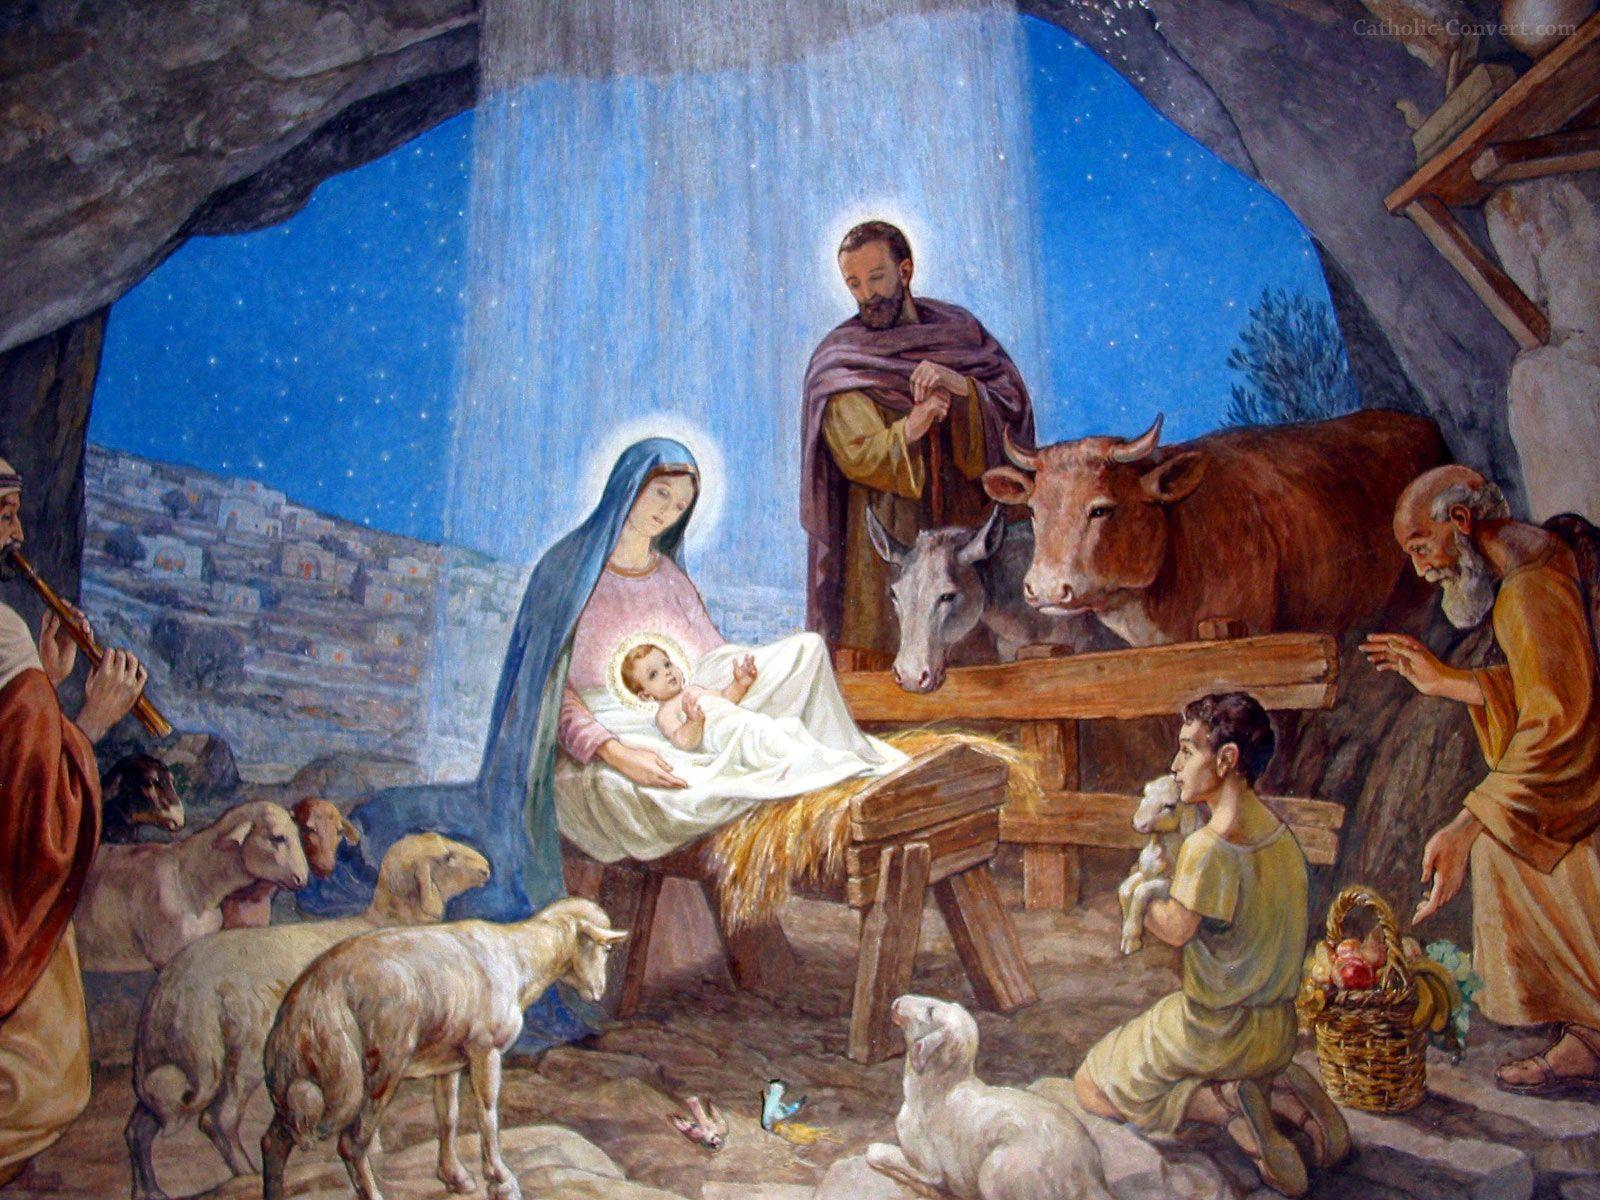 Wallpapers For > Nativity Backgrounds Desktop